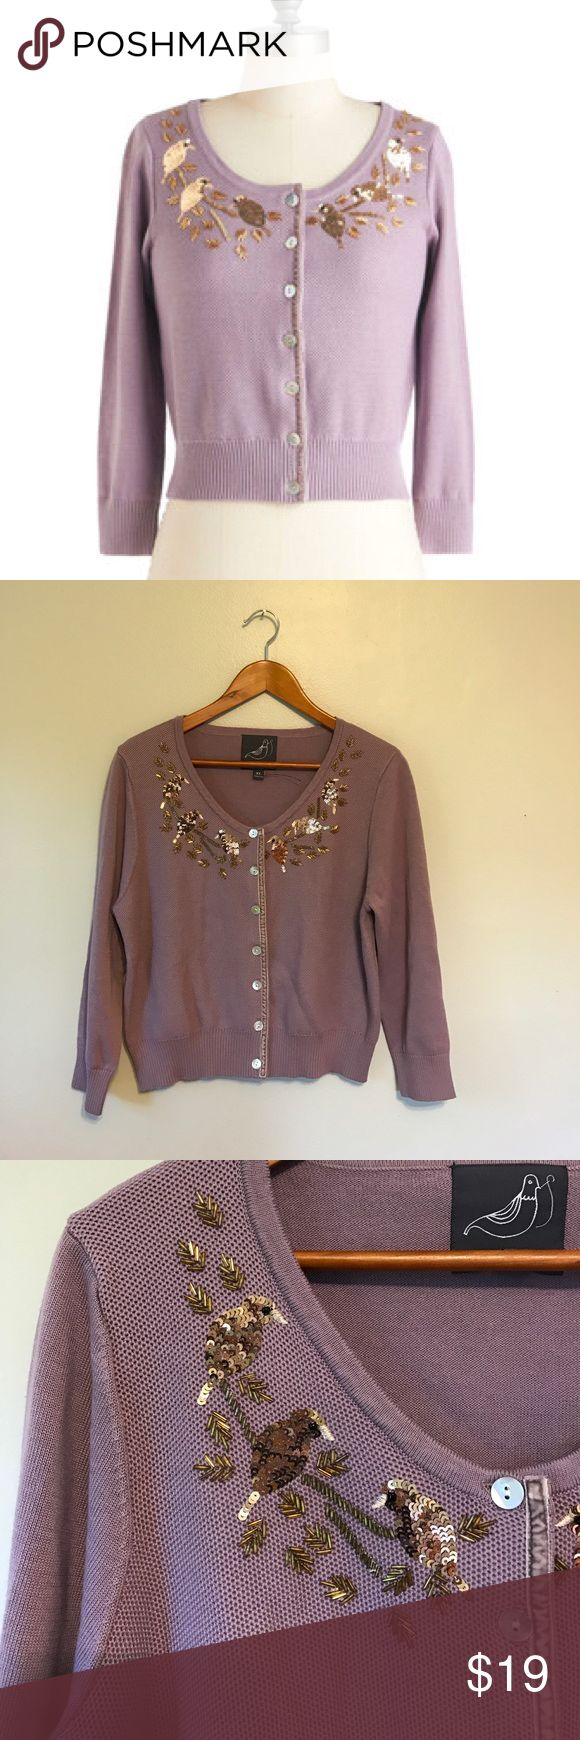 """ModCloth Knitted Dove brand cardigan with sequins NWOT there isn't a single sequin missing or out of place on this gorgeous Knitted Dove brand cardigan. This """"Good as Goldfinch"""" sweater features the beaded detail plus pearl buttons accompanied by a decorative strip of purple velvet.  Adorable sweater perfect for all seasons! ModCloth Sweaters Cardigans"""